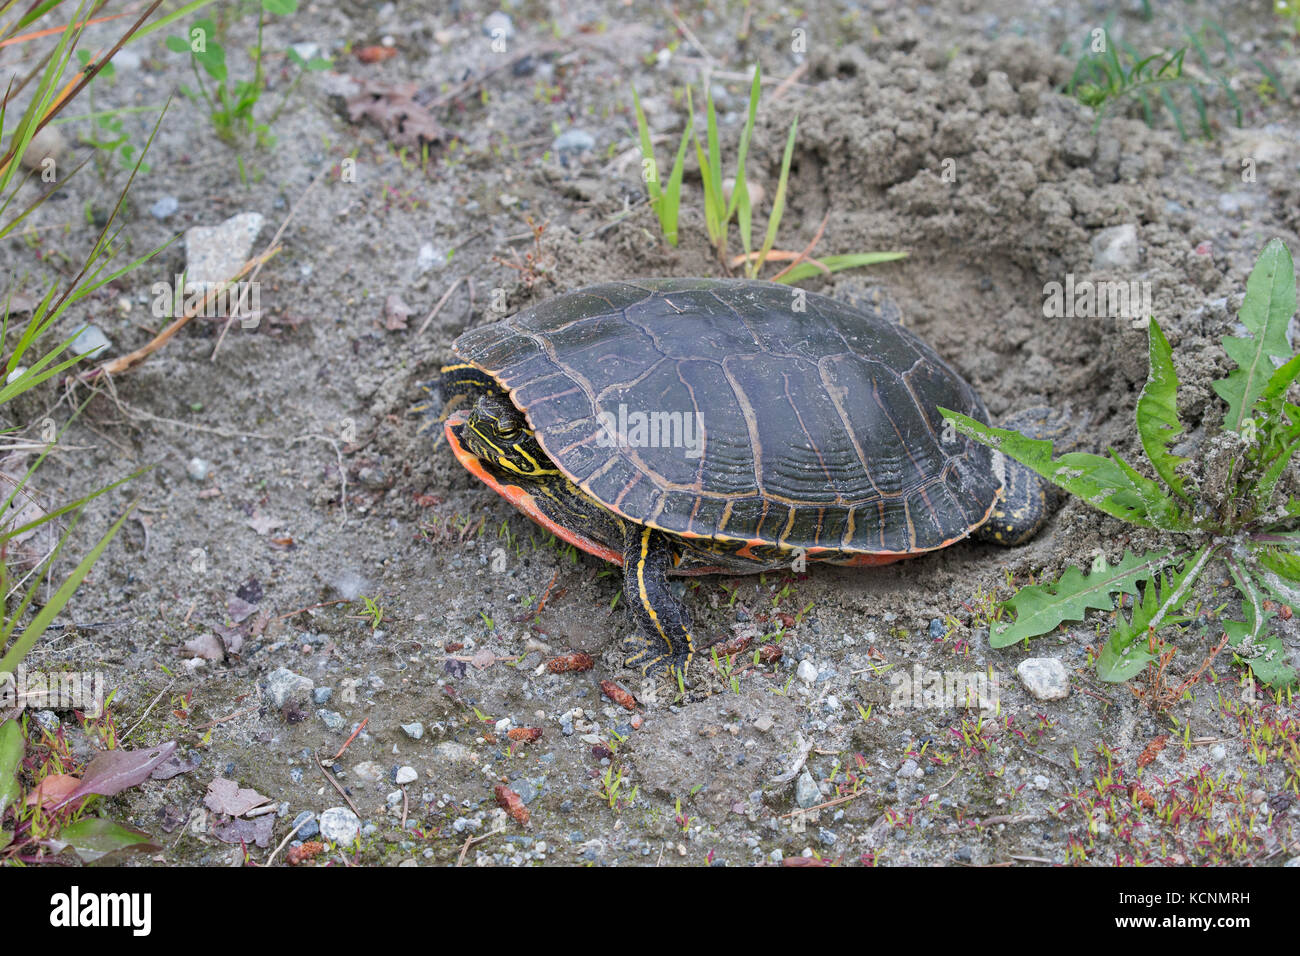 Western painted turtle (Chrysemys picta bellii), female using her hind legs to fill in her nest cavity where she - Stock Image